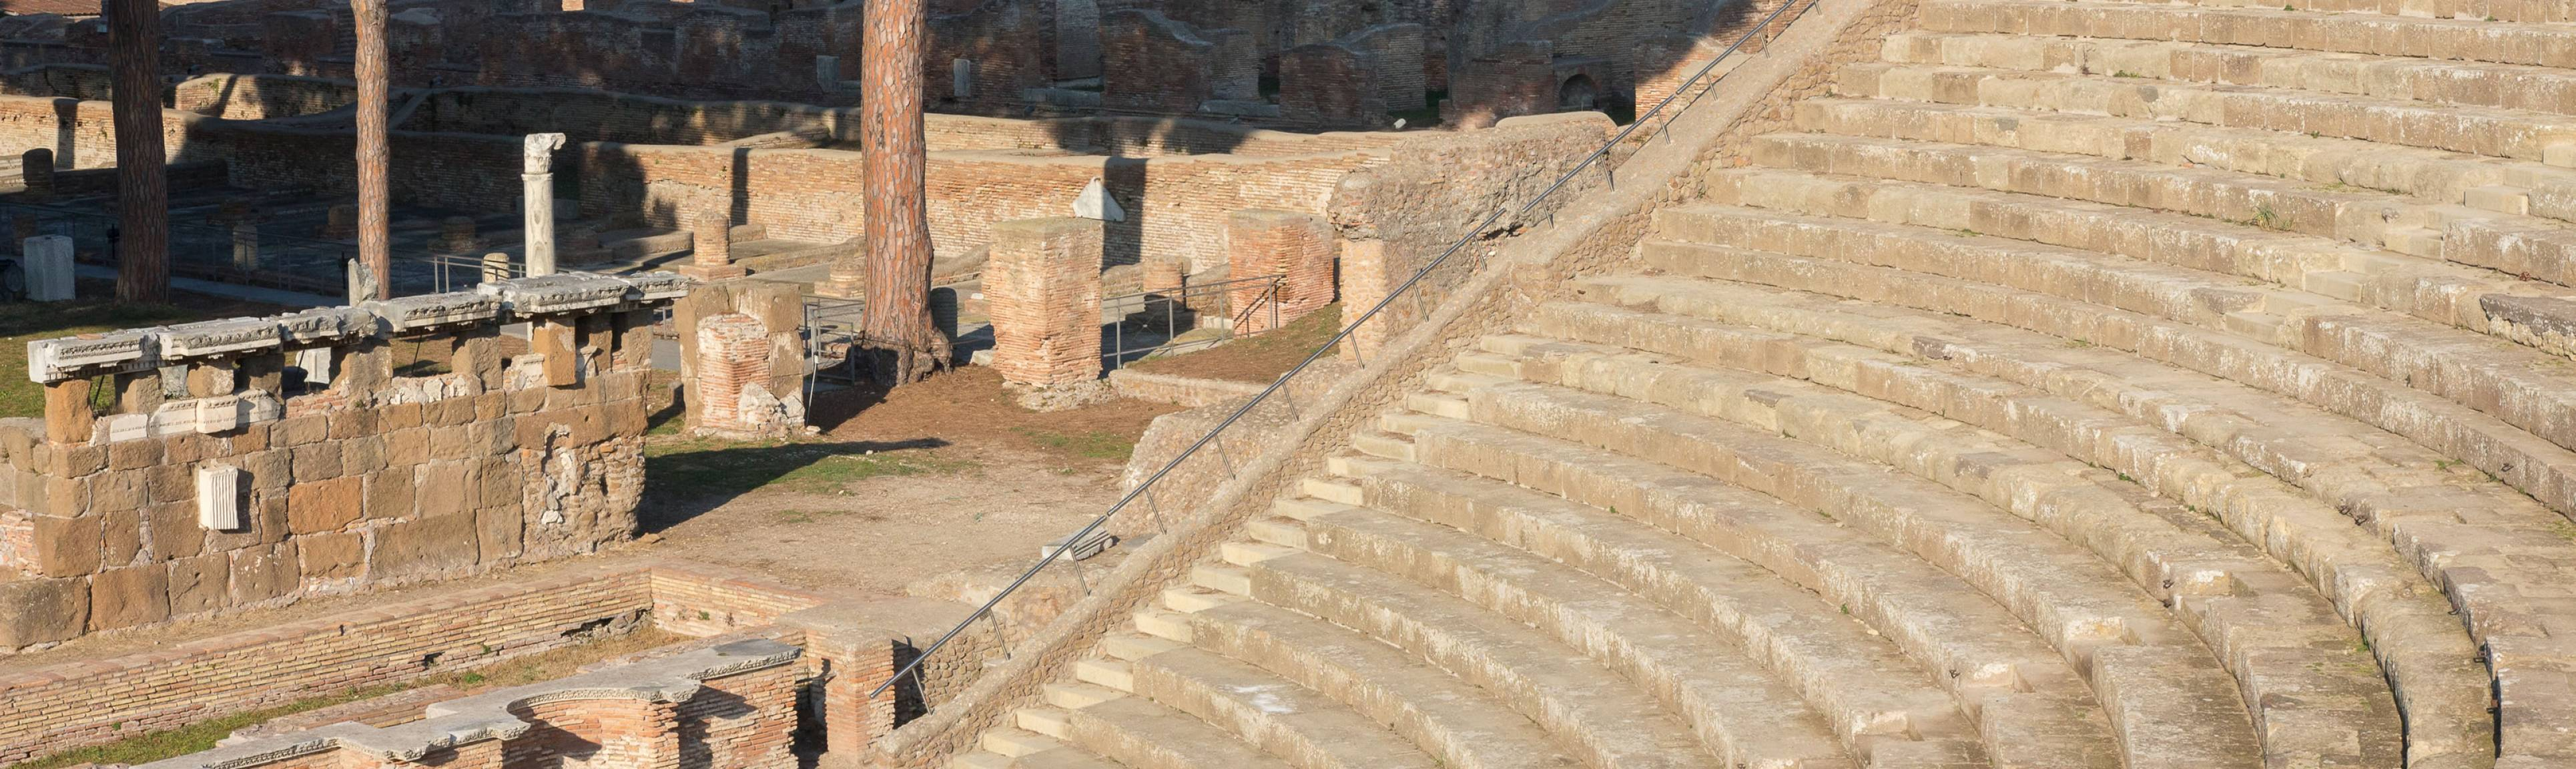 Rows of amphitheater seating at Agrippa's Theatre at Ostia, near Rome